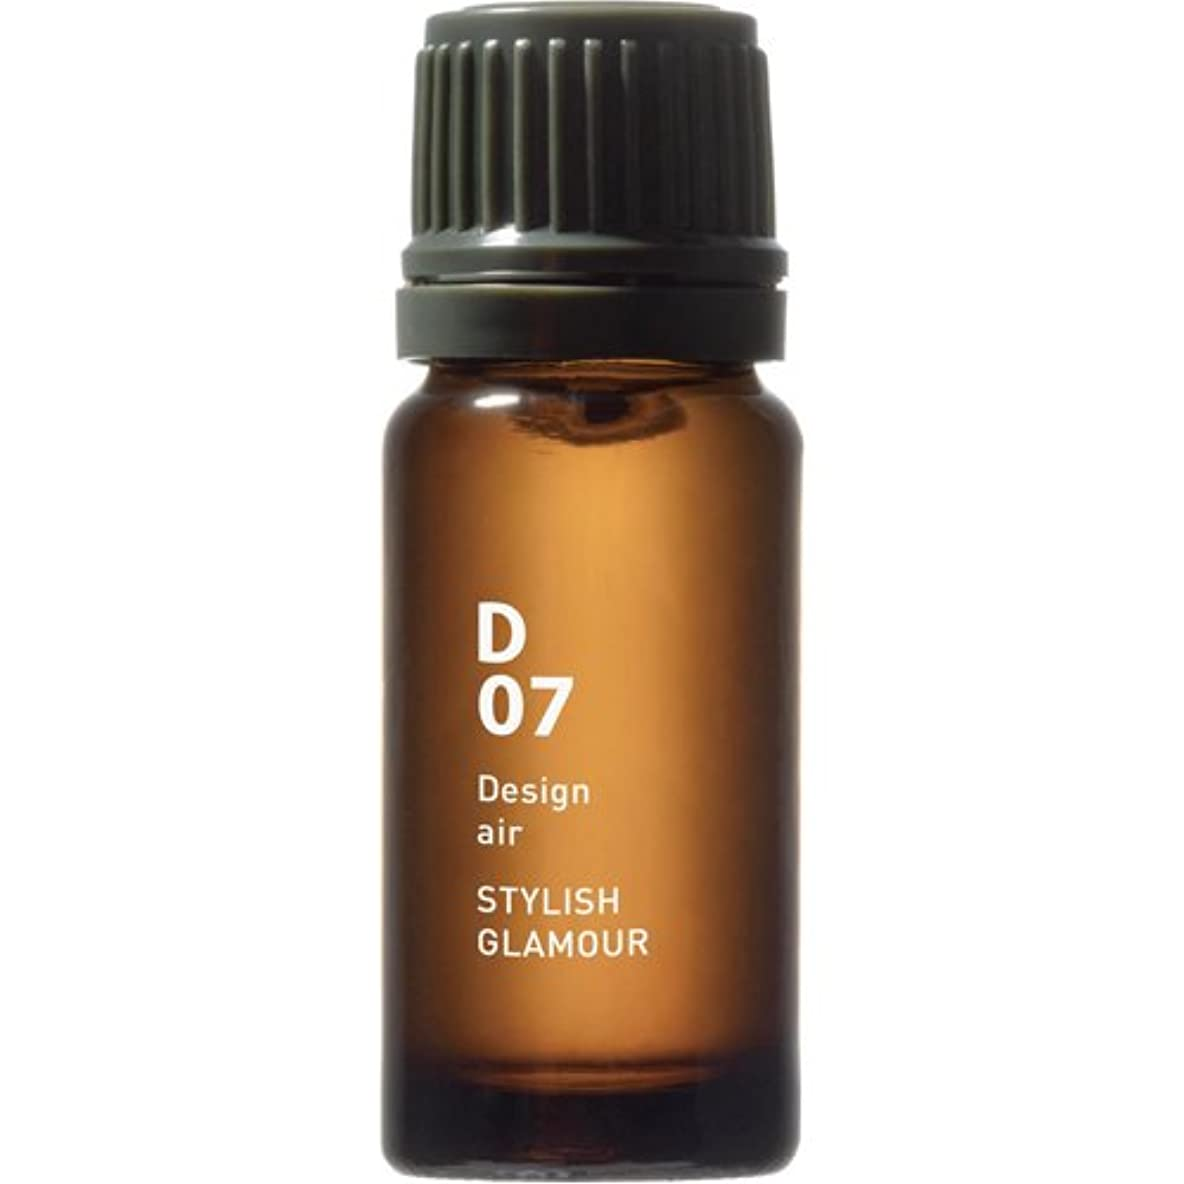 D07 STYLISH GLAMOUR Design air 10ml